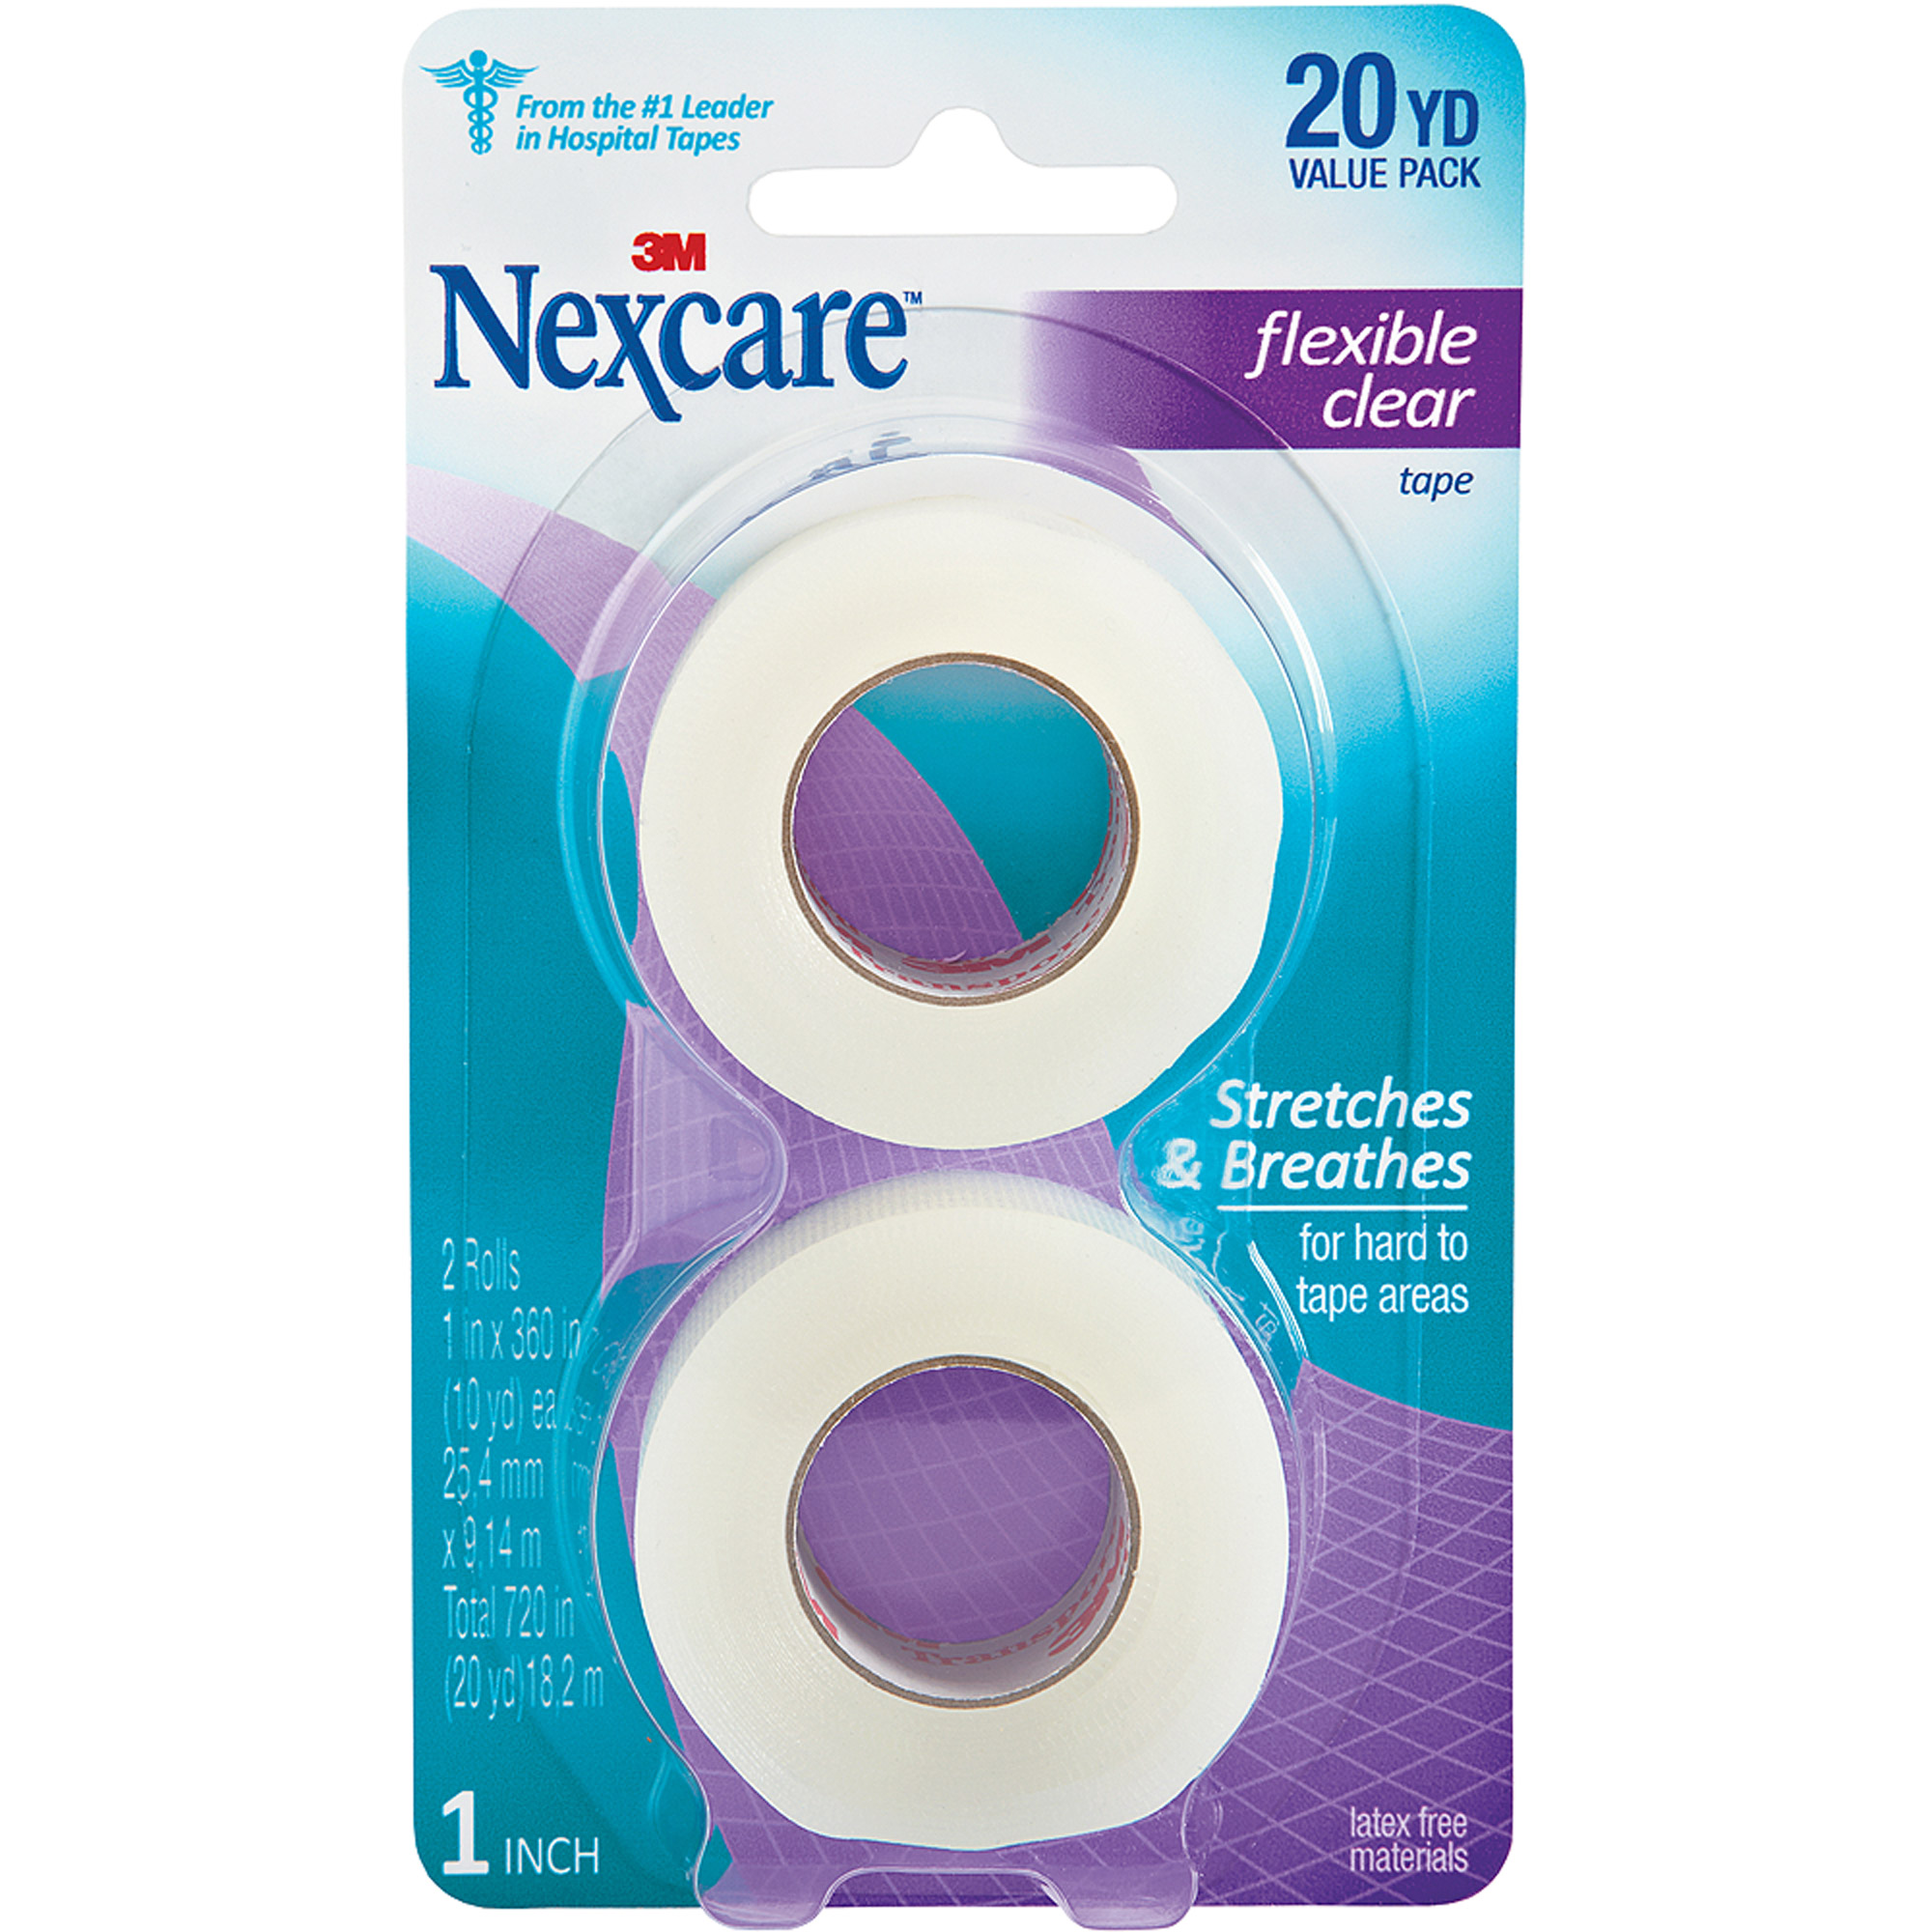 Nexcare Flexible Clear First Aid Tape, 771-2PK, 1 in x 10 yds, 2 Rolls